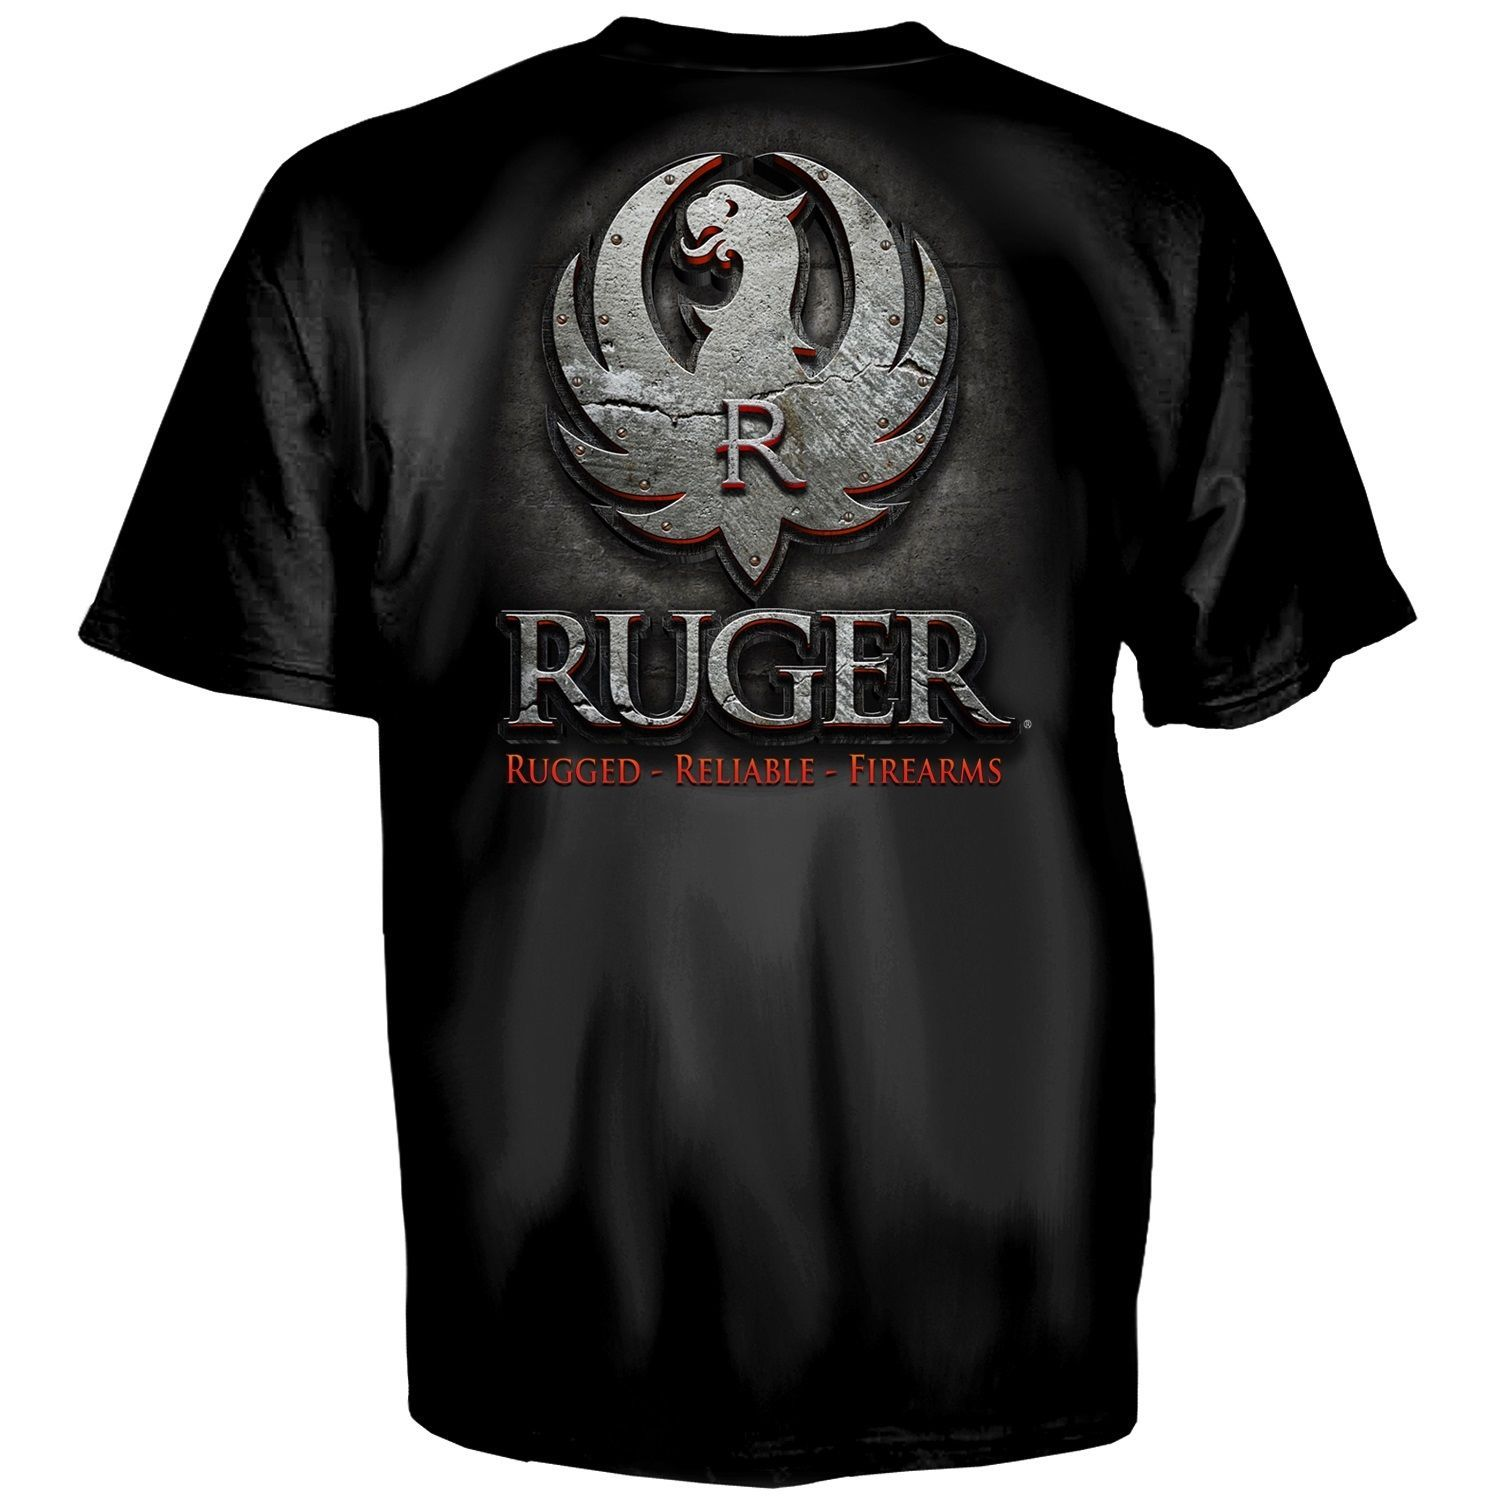 RUGER FIREARMS METAL LOGO EAGLE AMERICA FLAG GUN MILITARY MENS T TEE SHIRT S-3XL for sale  USA